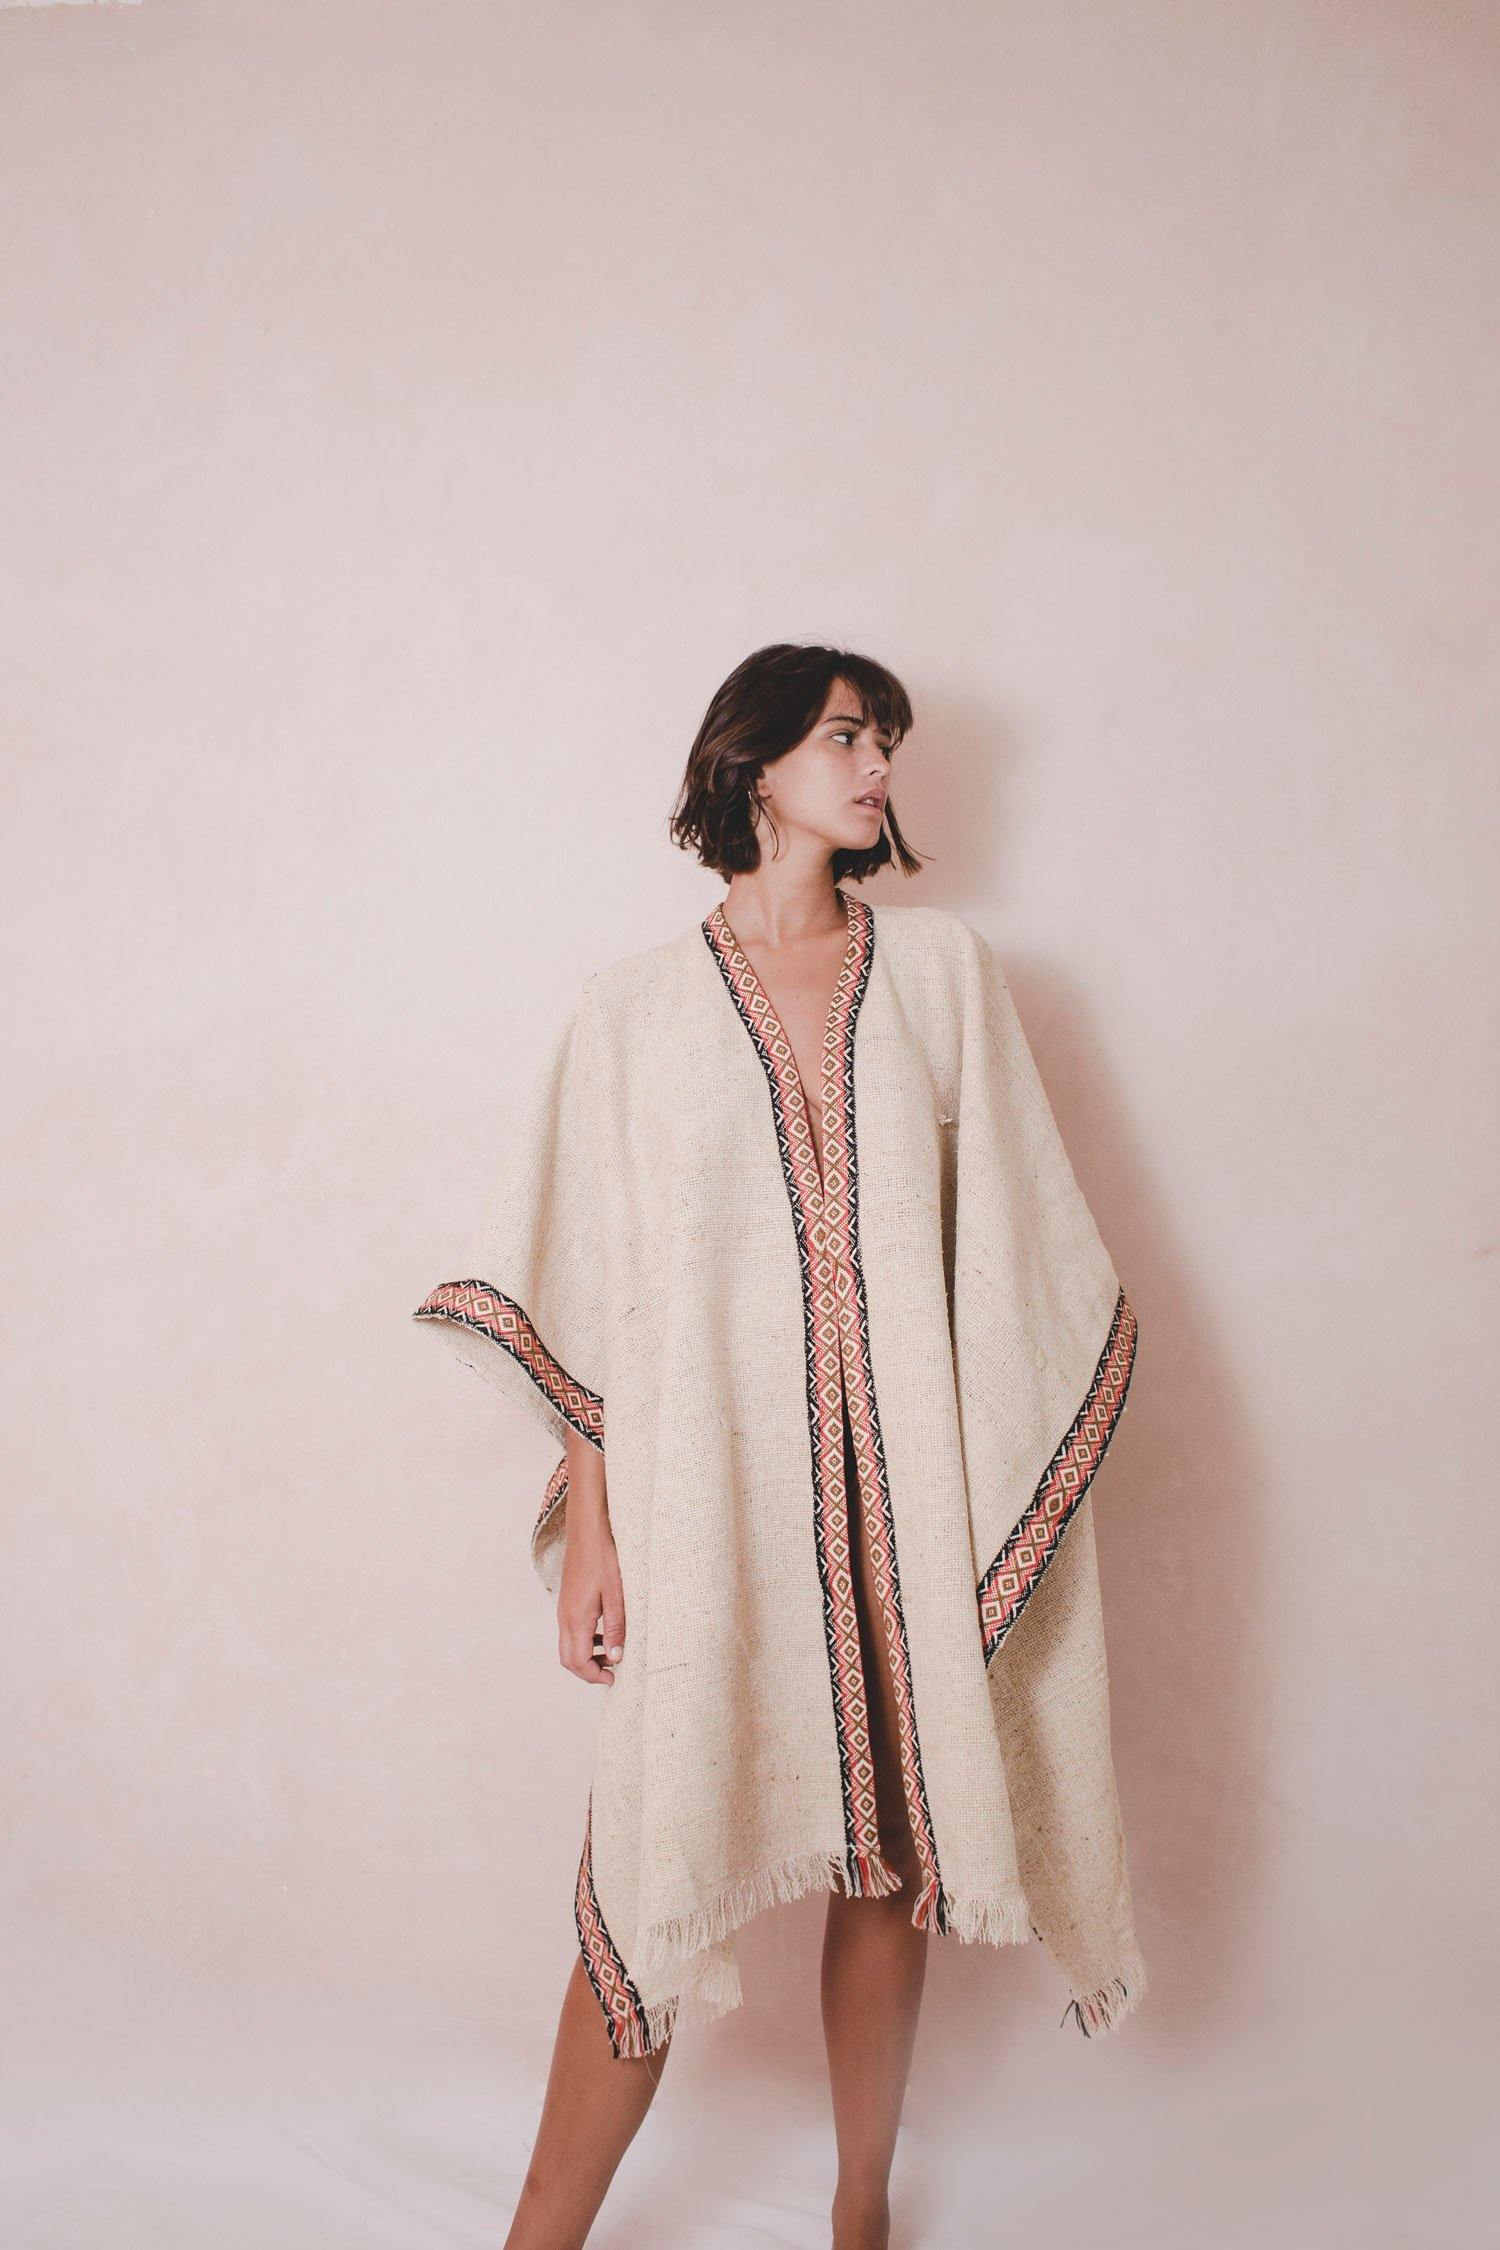 NAT RUG - Handwoven Artisanal Cape - Natural Rough